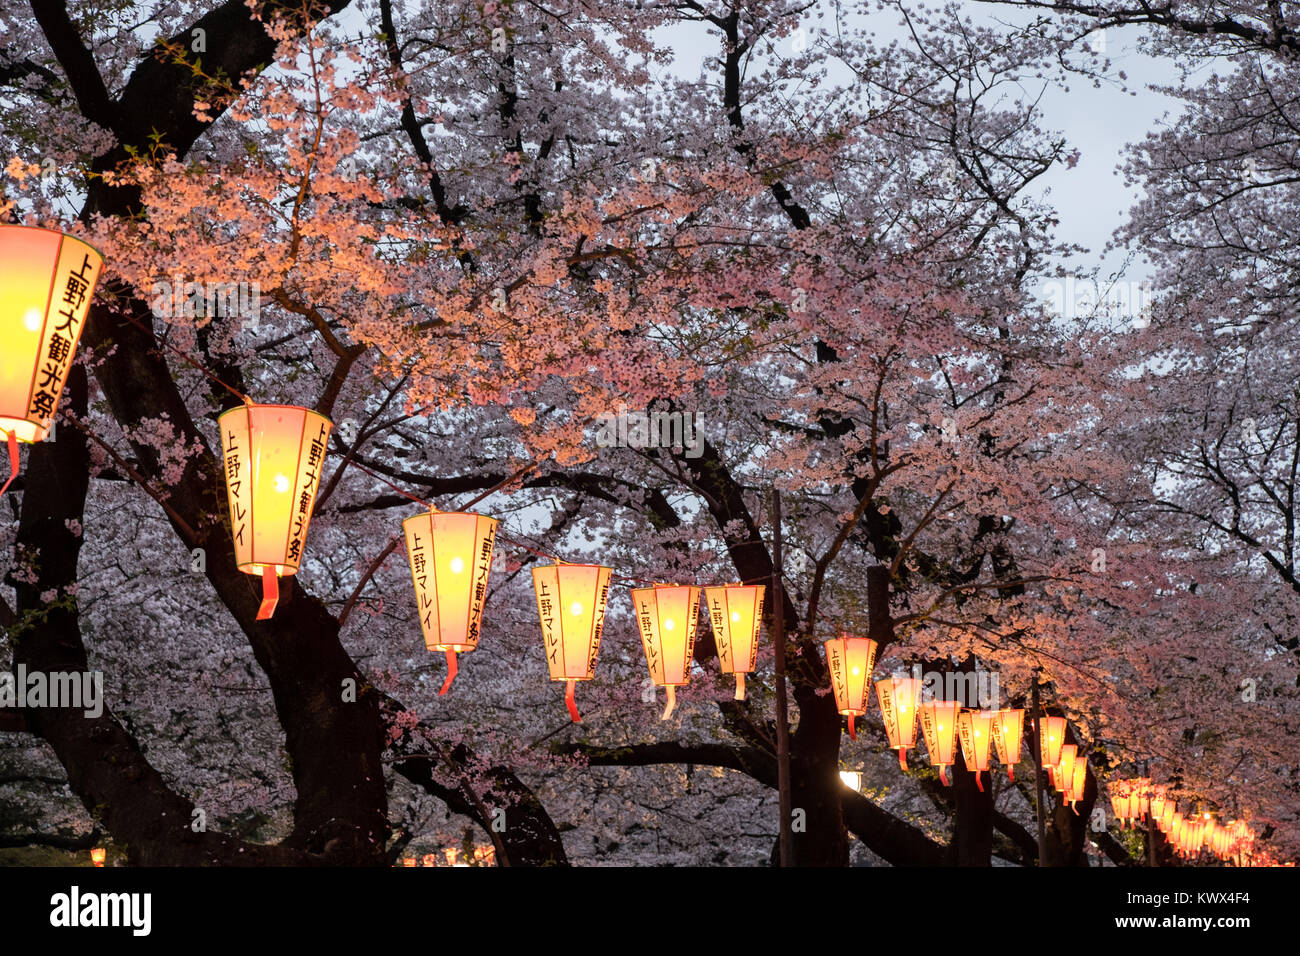 Japan, Tokyo: lanterns, lights, streetlights and cherry trees in full bloom in the Ueno Park - Stock Image